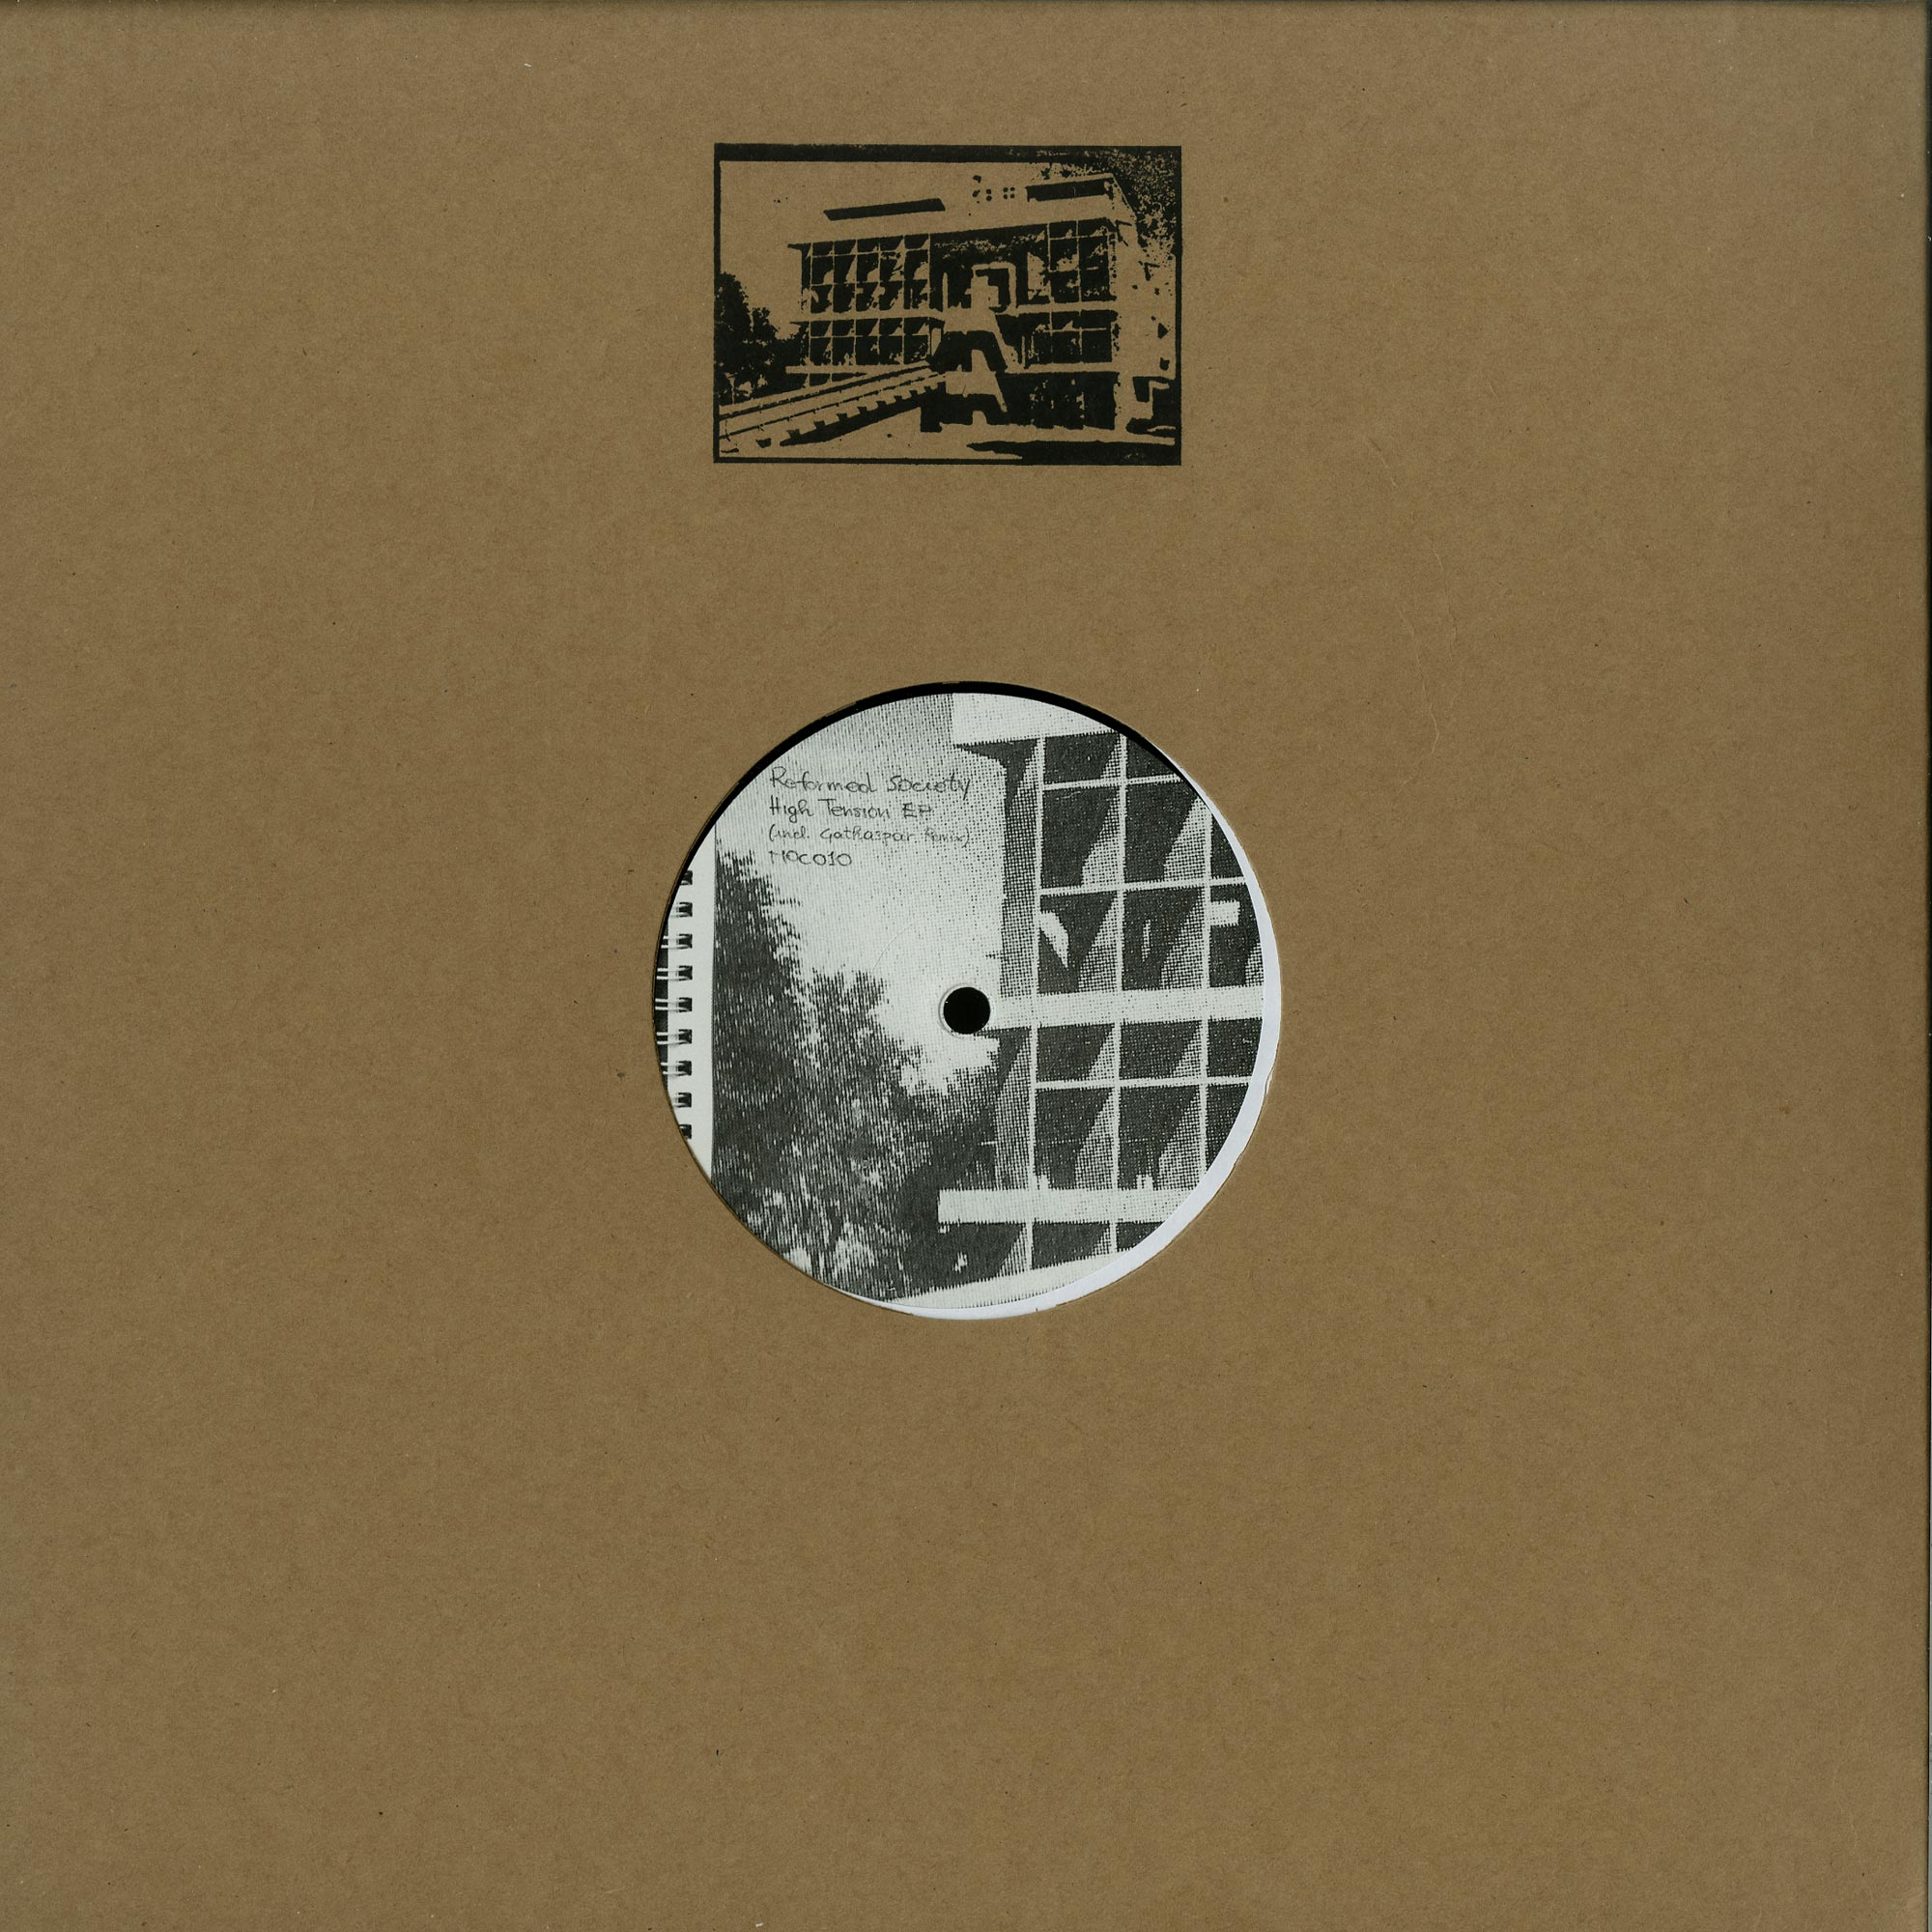 Reformed Society - HIGH TENSION EP